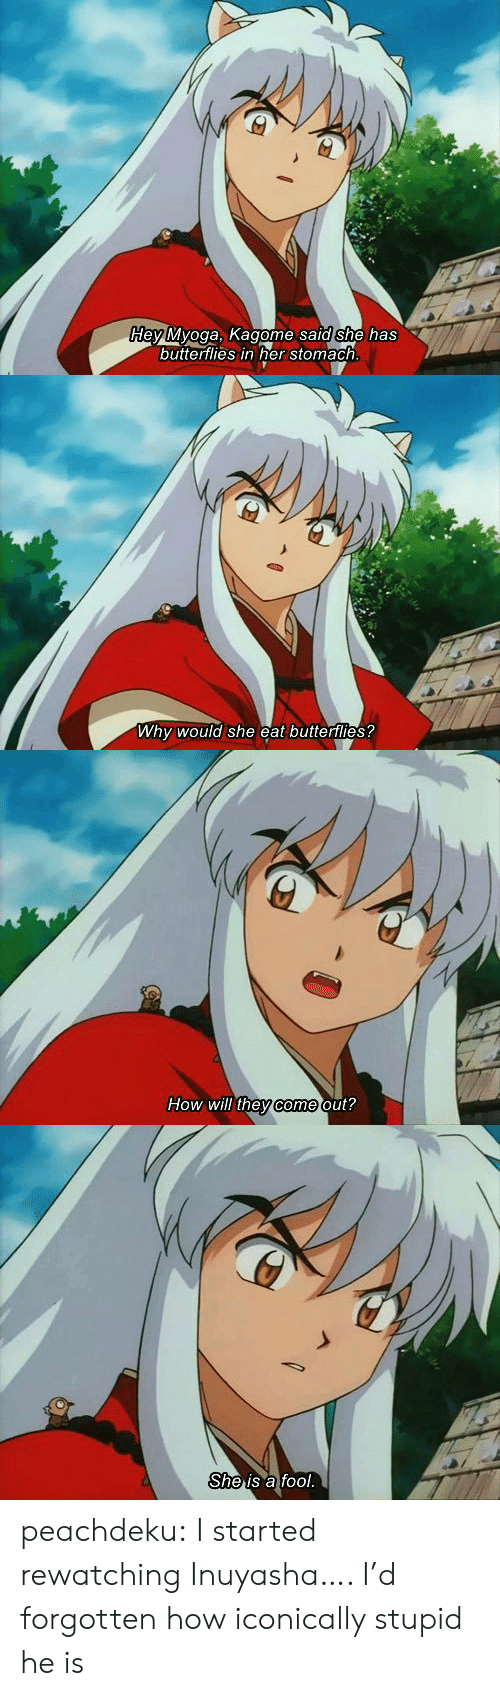 Rewatching: dey Myoga, Kagome sald she has  buttertlies in her stomach   Why would she eat butterflies?   How will they come out?   She is a fool. peachdeku:  I started rewatching Inuyasha…. I'd forgotten how iconically stupid he is